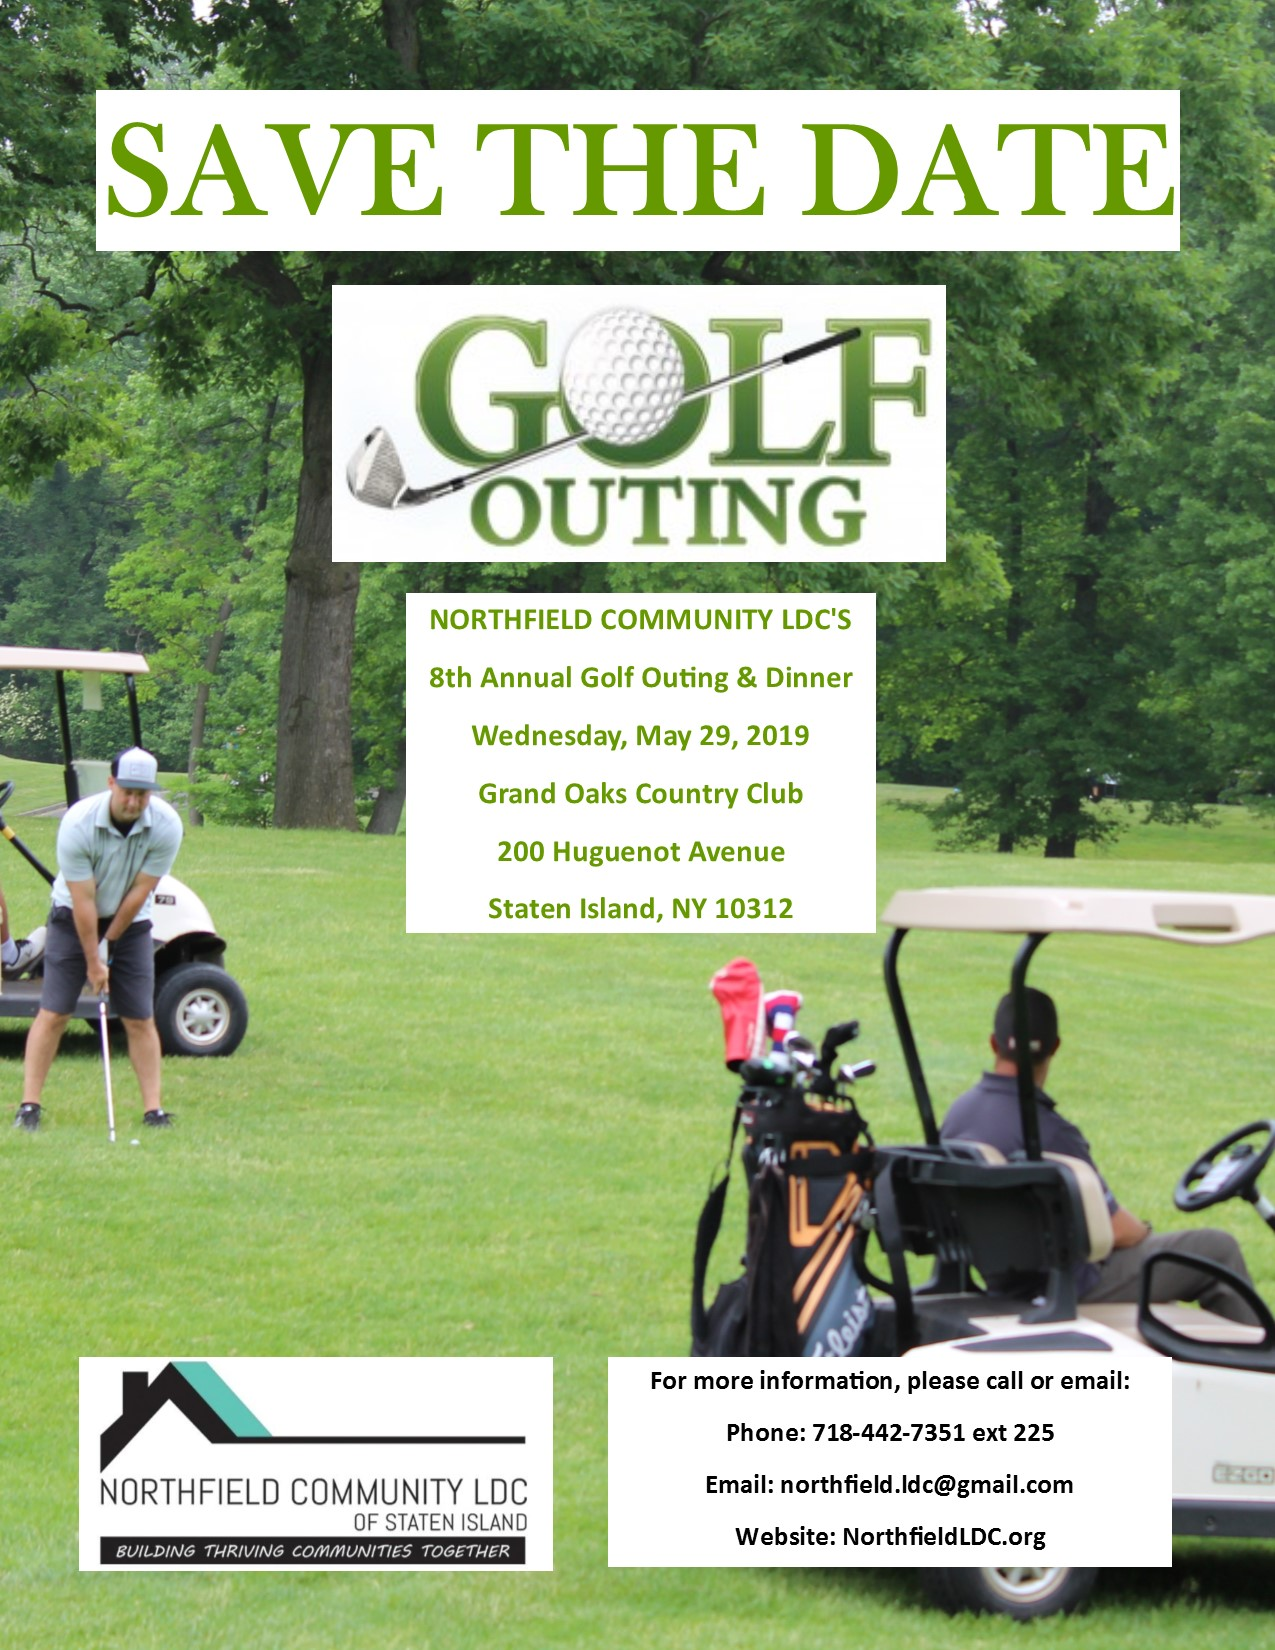 SAVE THE DATE 8th Annual Golf Outing and Dinner @ Grand Oaks Country Club